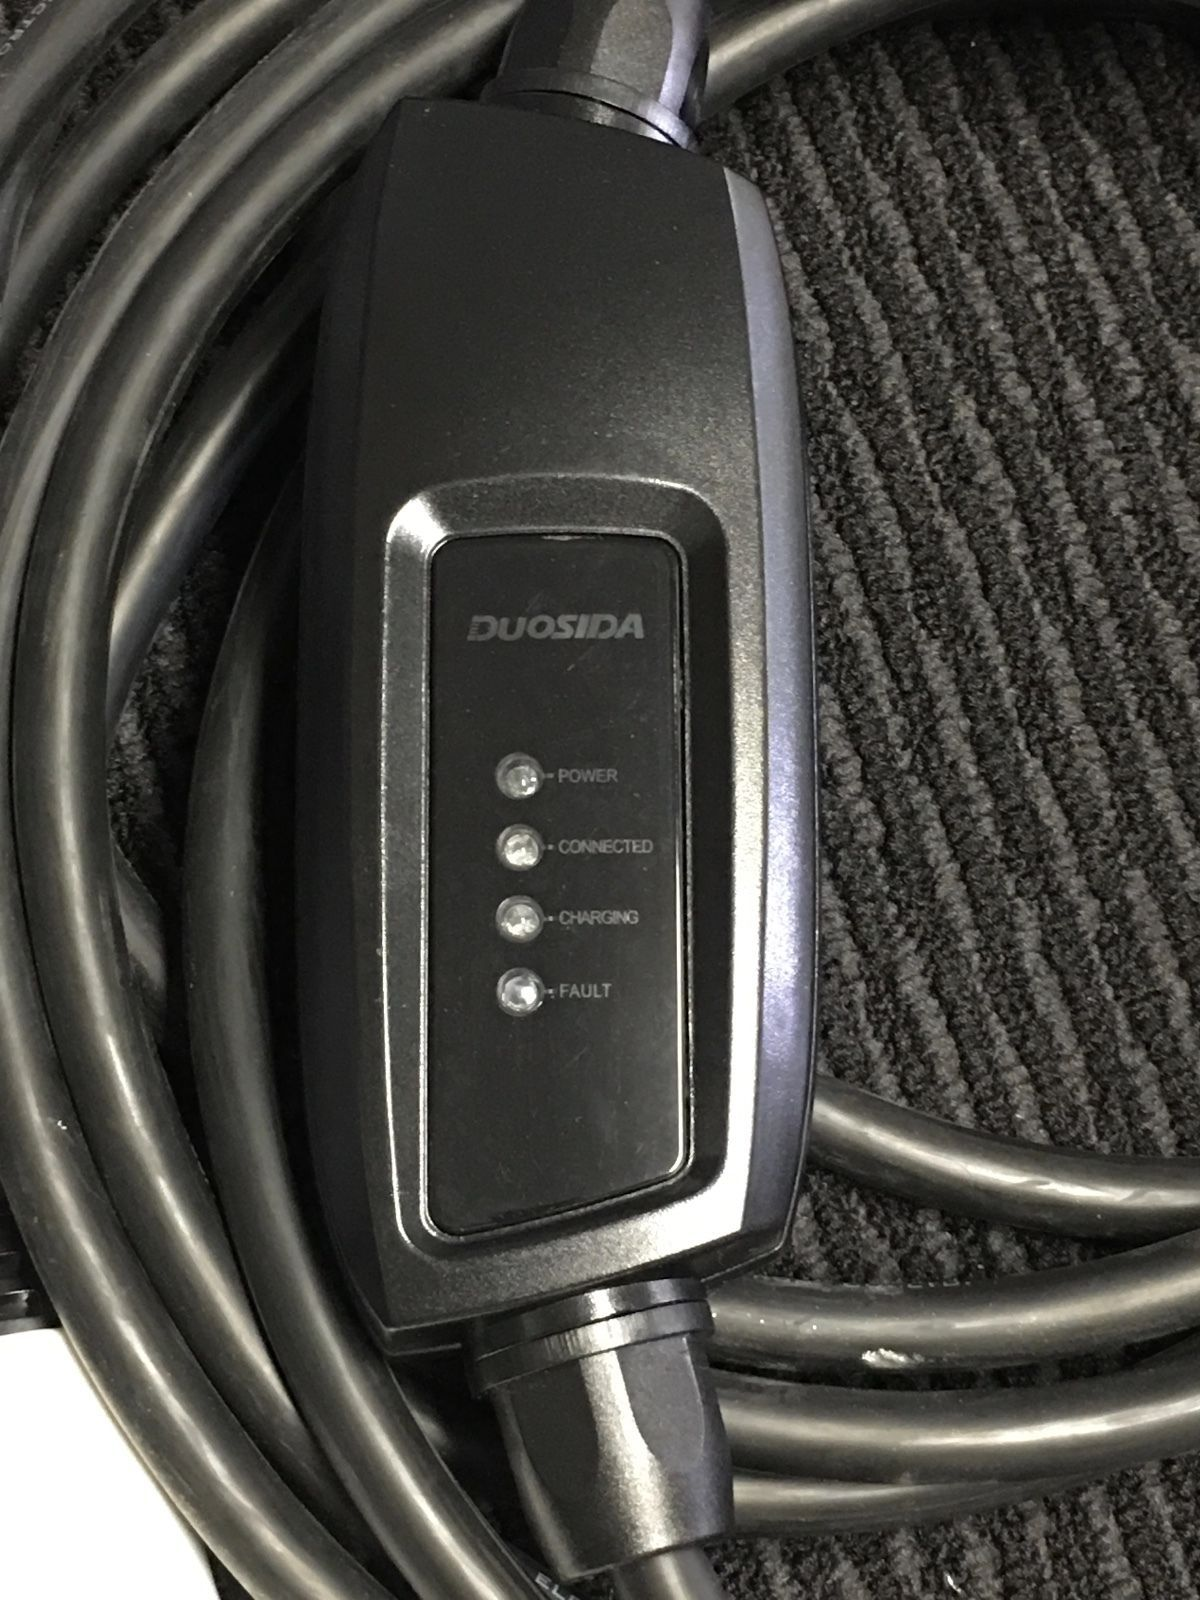 Duosida Evse Electric Car Charger Ev Phev Level 2 16 Amps 240v 3 8kw In 1